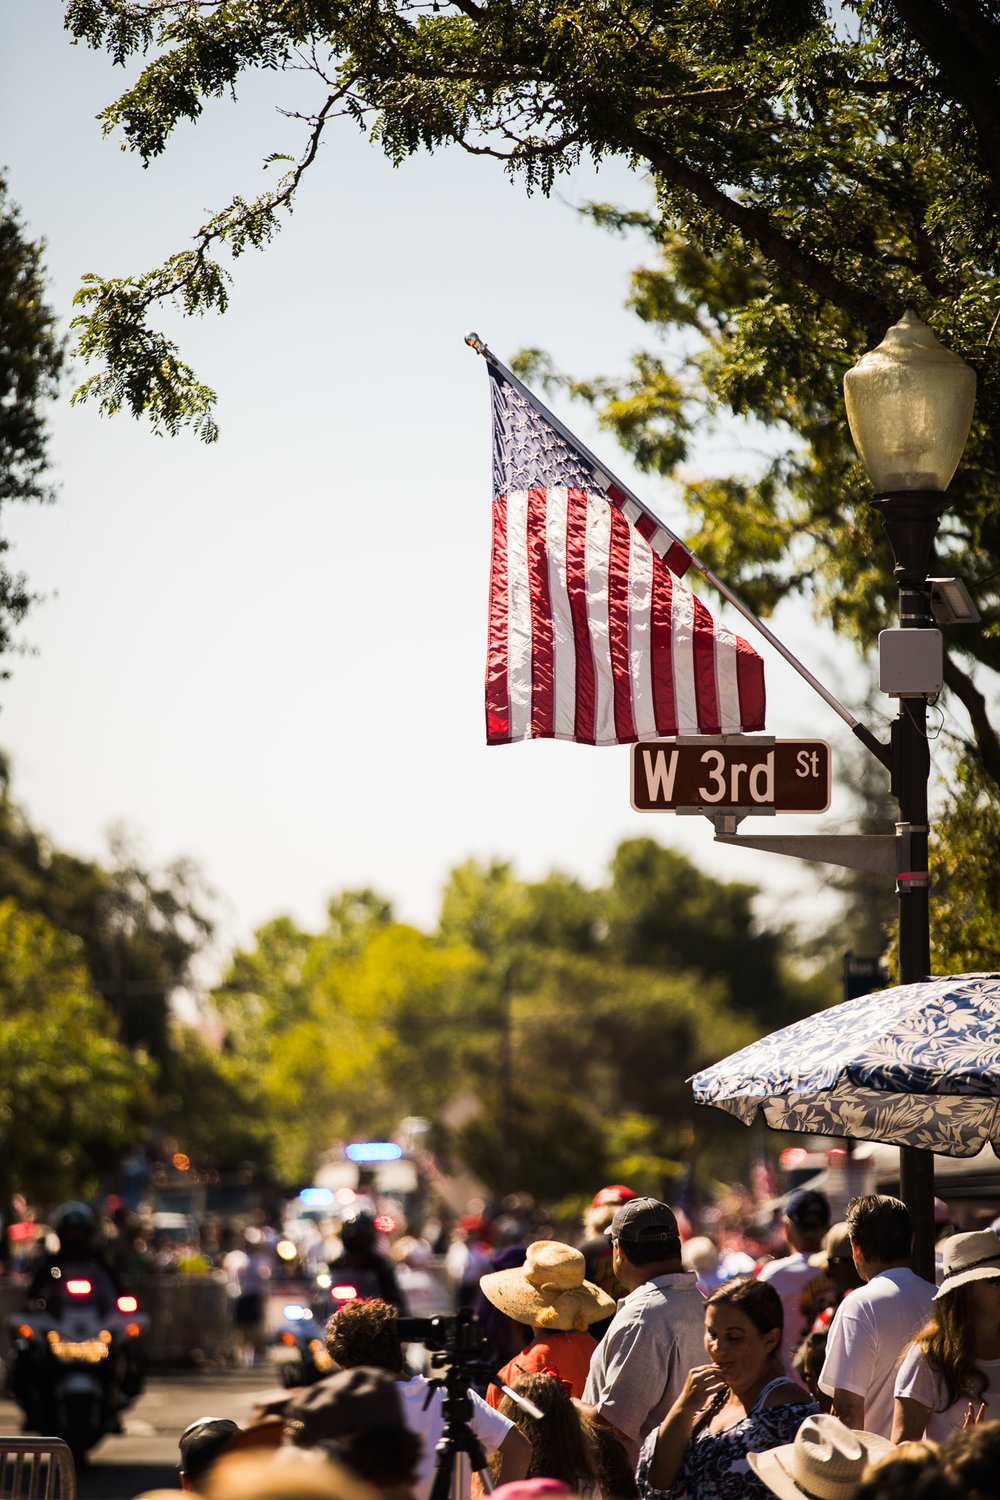 Archer_Inspired_Photography_Morgan_Hill_California_4th_of_july_parade-36.jpg